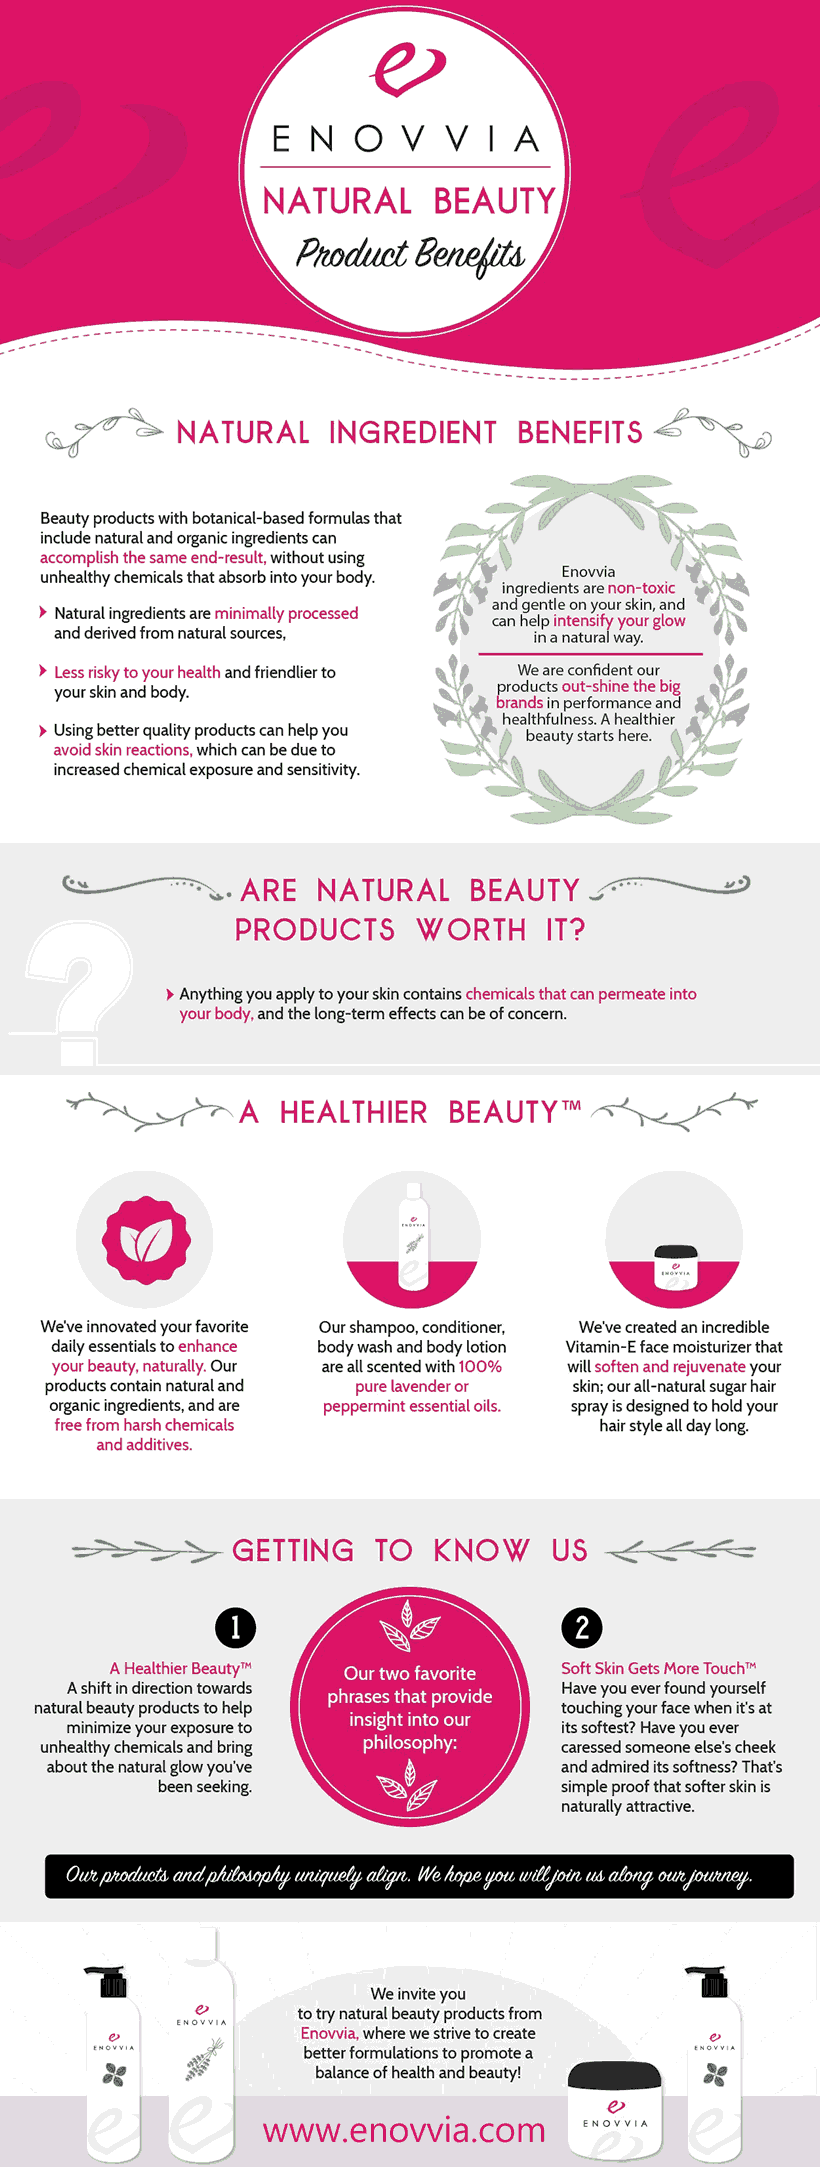 Infographic - Enovvia Natural Beauty Products - Guide to a healthier beauty